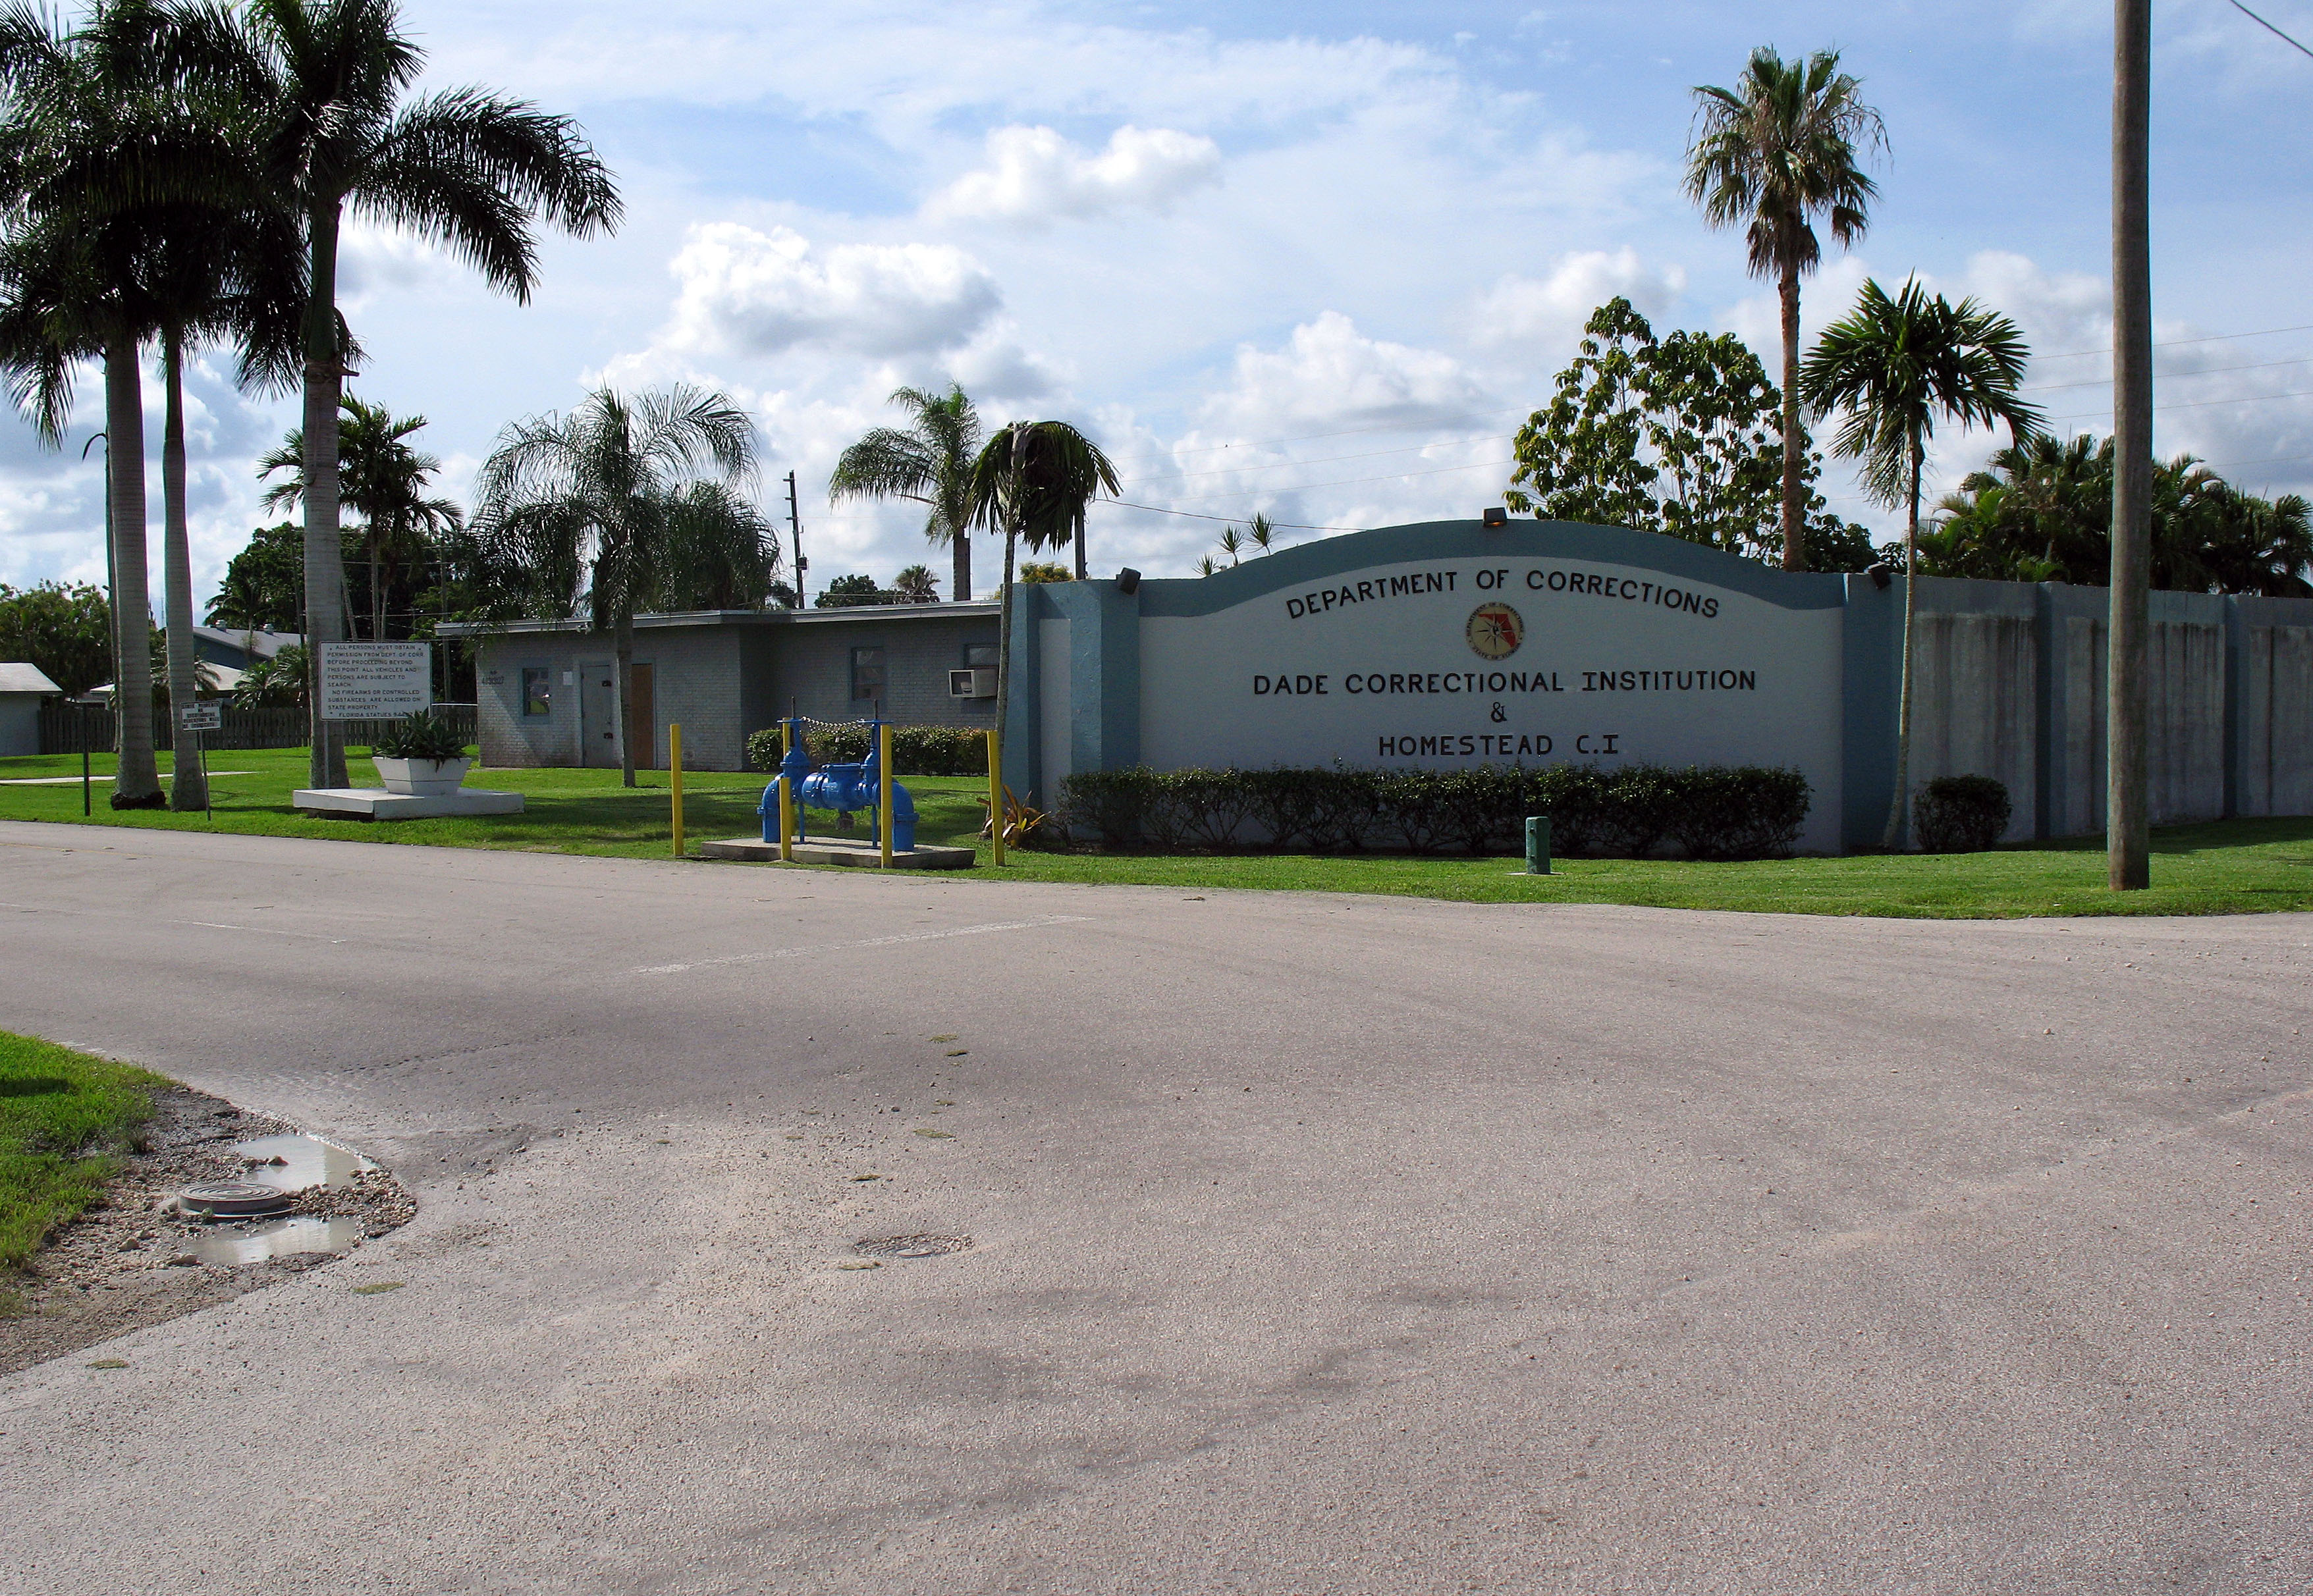 Dade Correctional Institution - Wikipedia